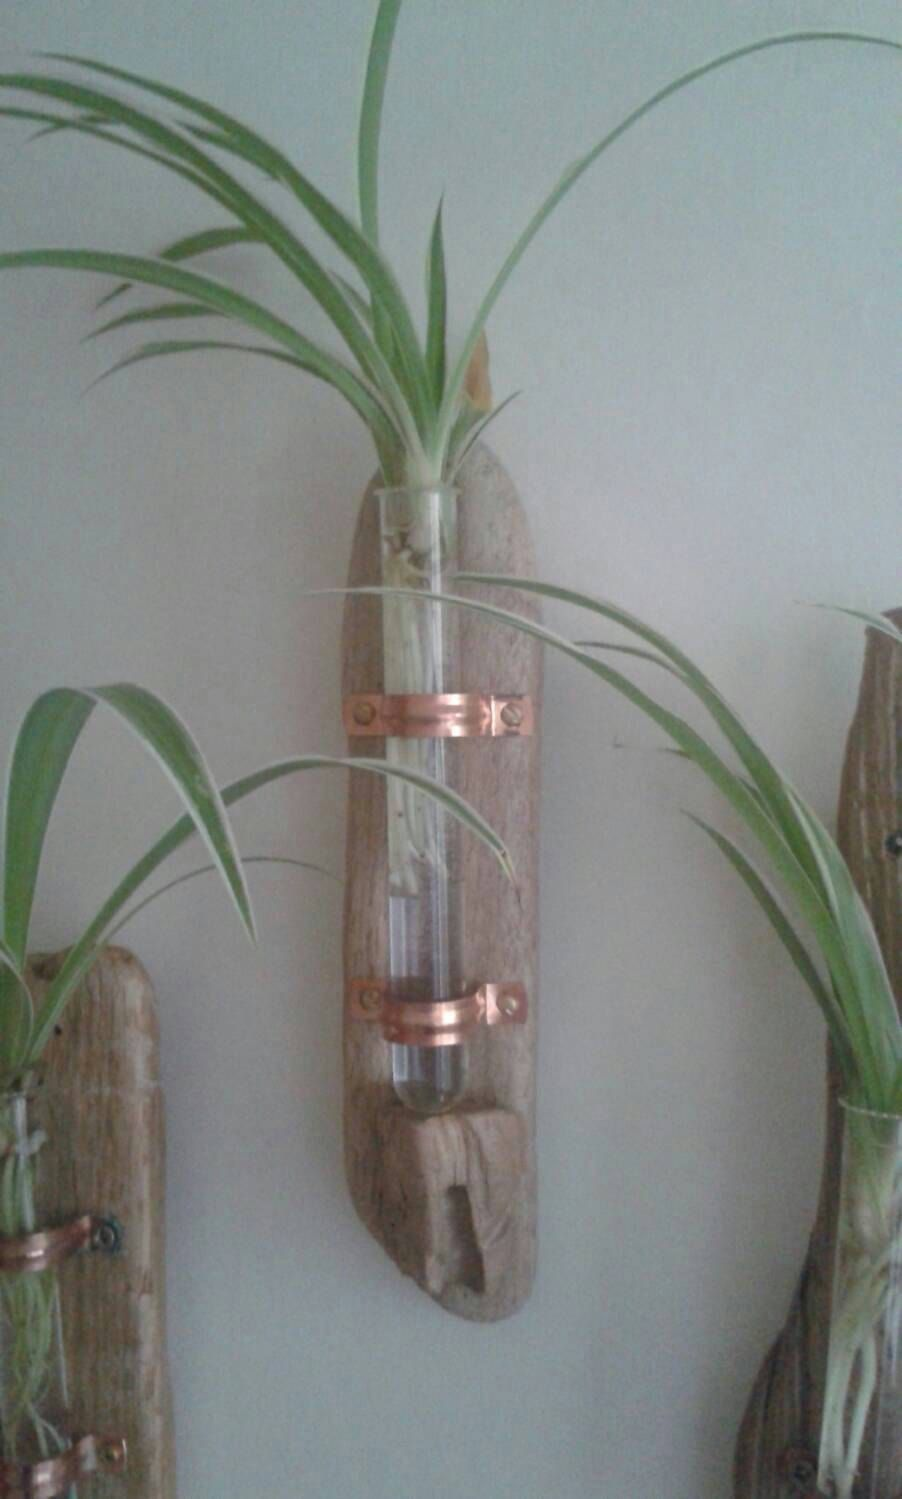 Driftwood wall vase for single flower display with copper fittings driftwood wall vase for single flower display with copper fittings glass test tube driftwood reviewsmspy